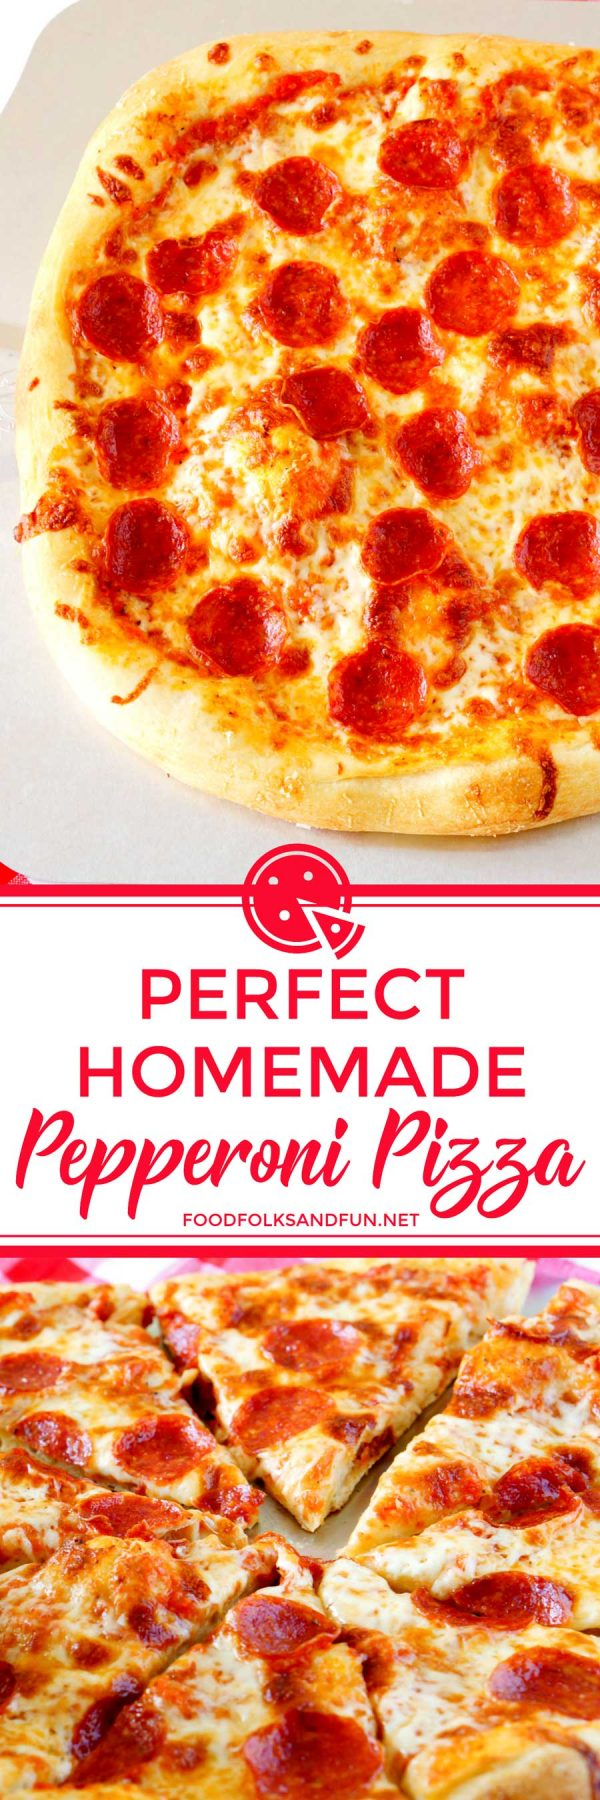 The Best Homemade Pizza recipe with pepperoni.